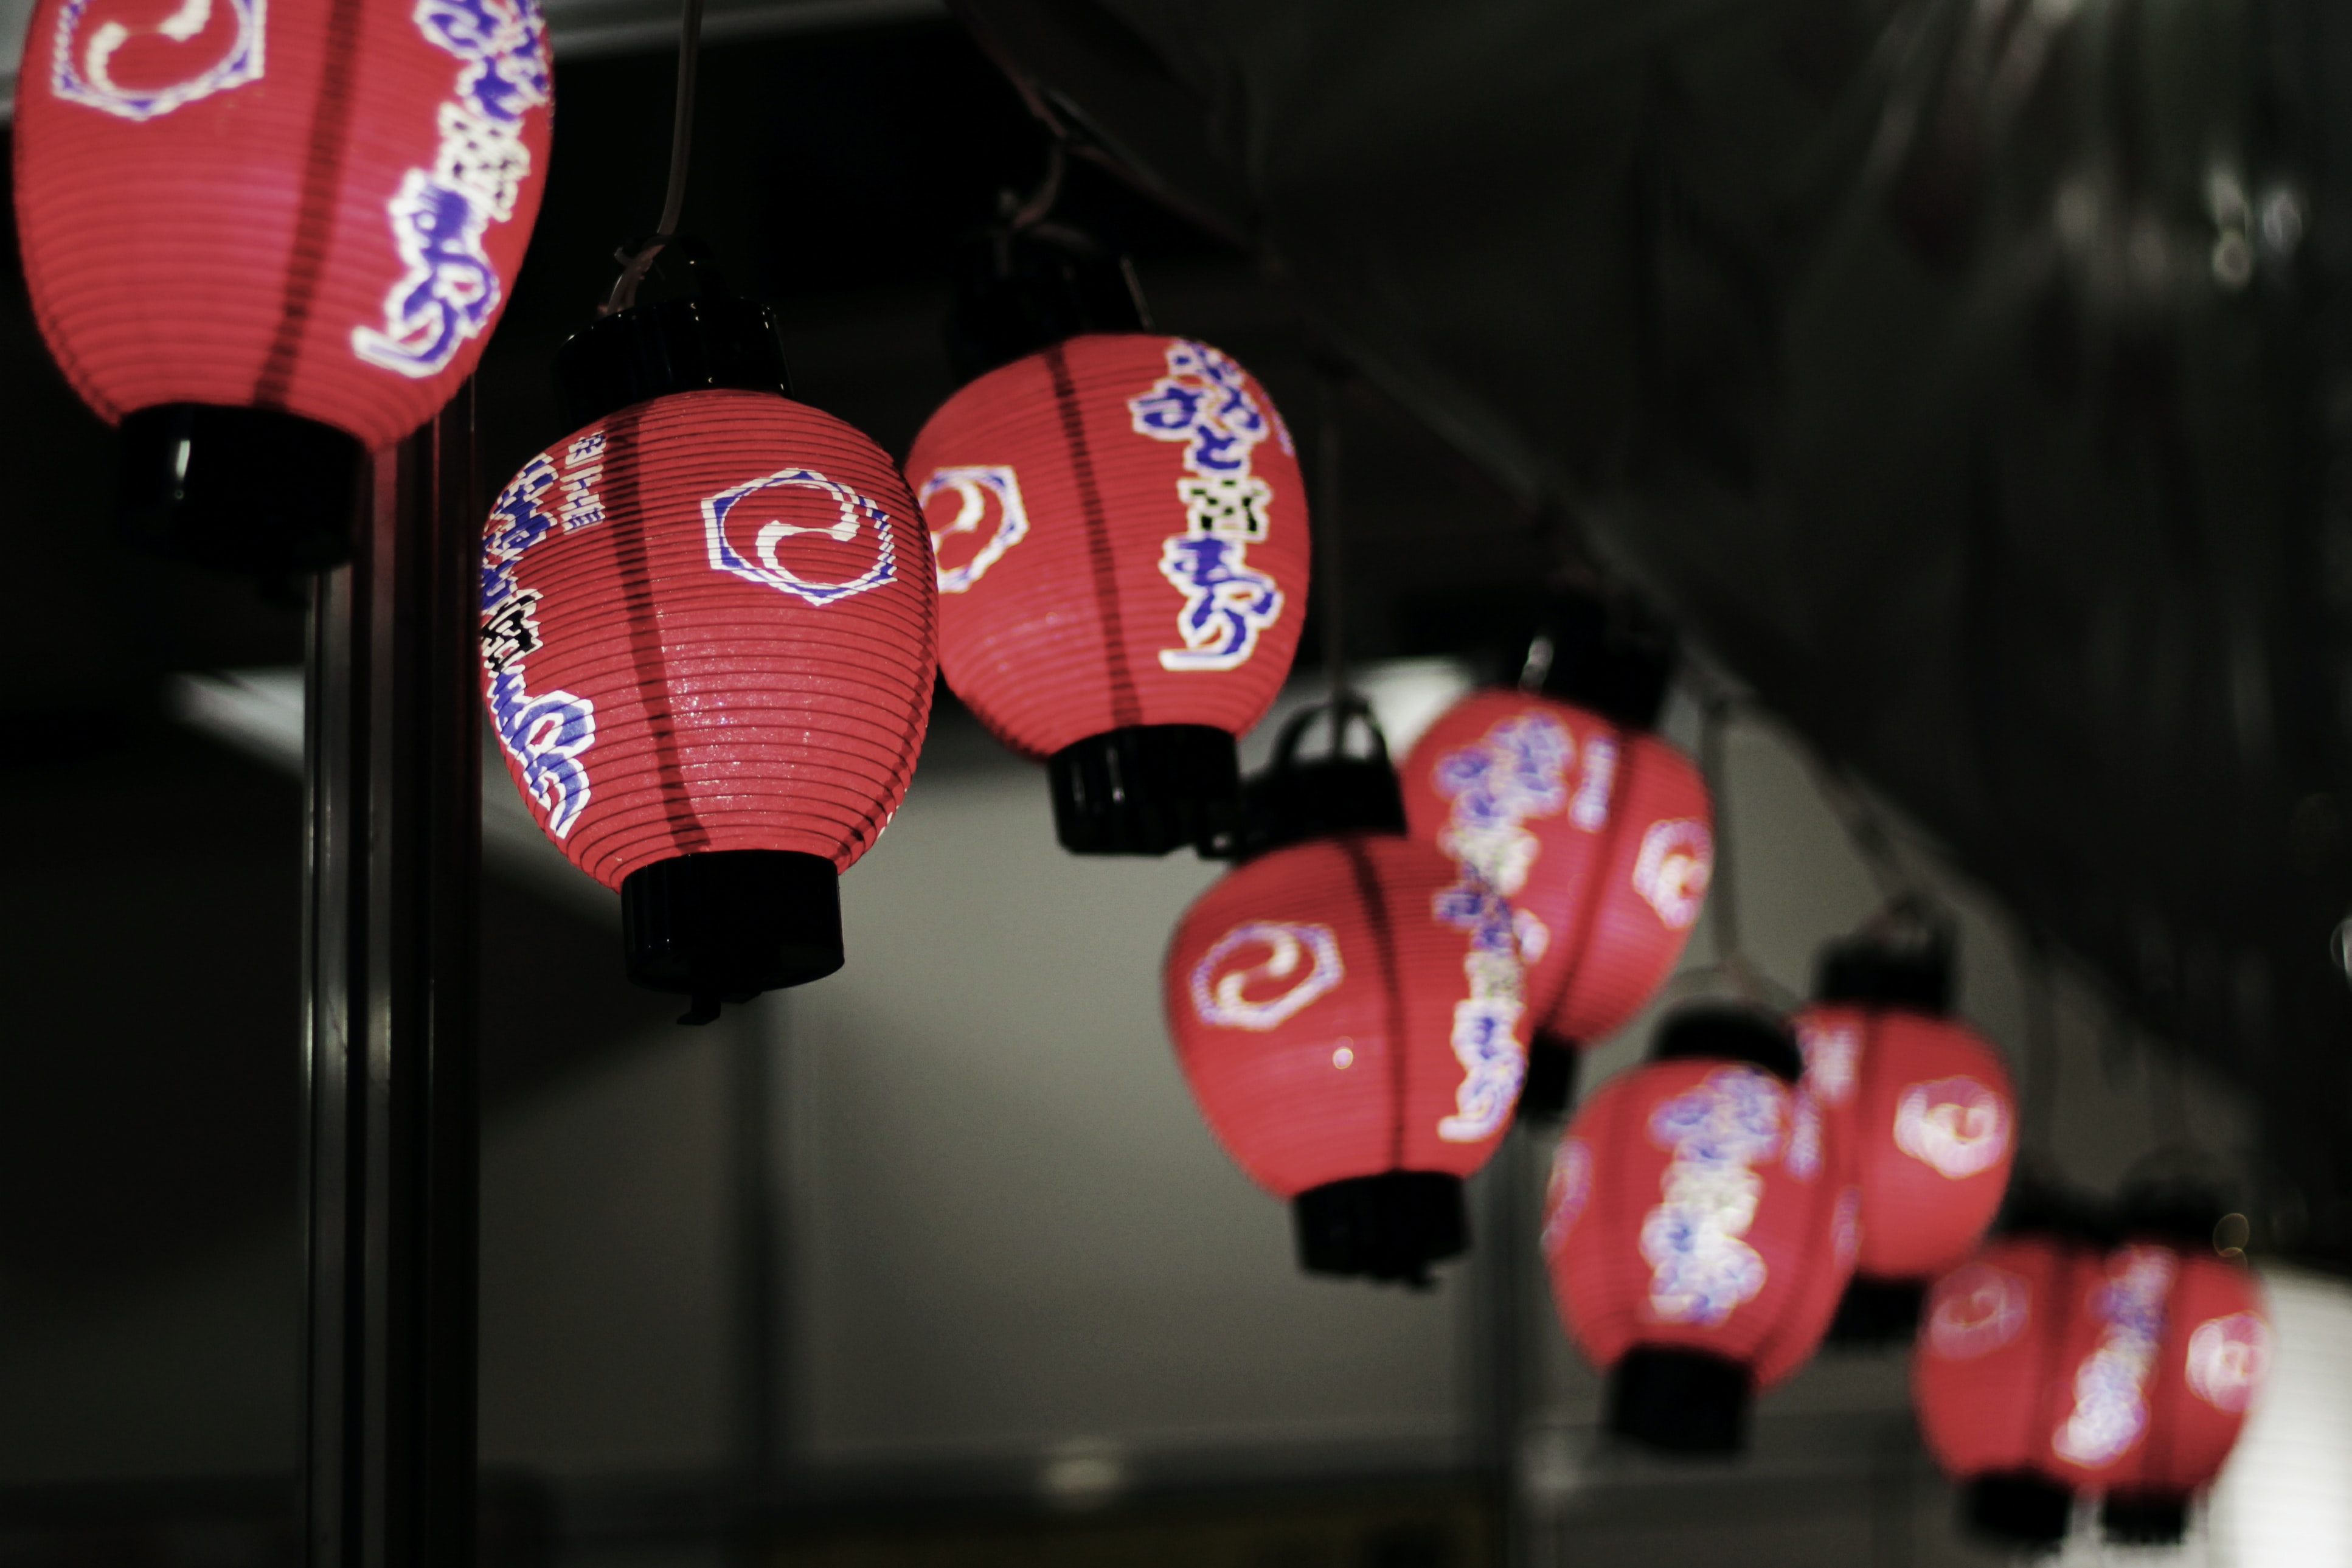 Red japanese lanterns hanging from the ceiling indoors